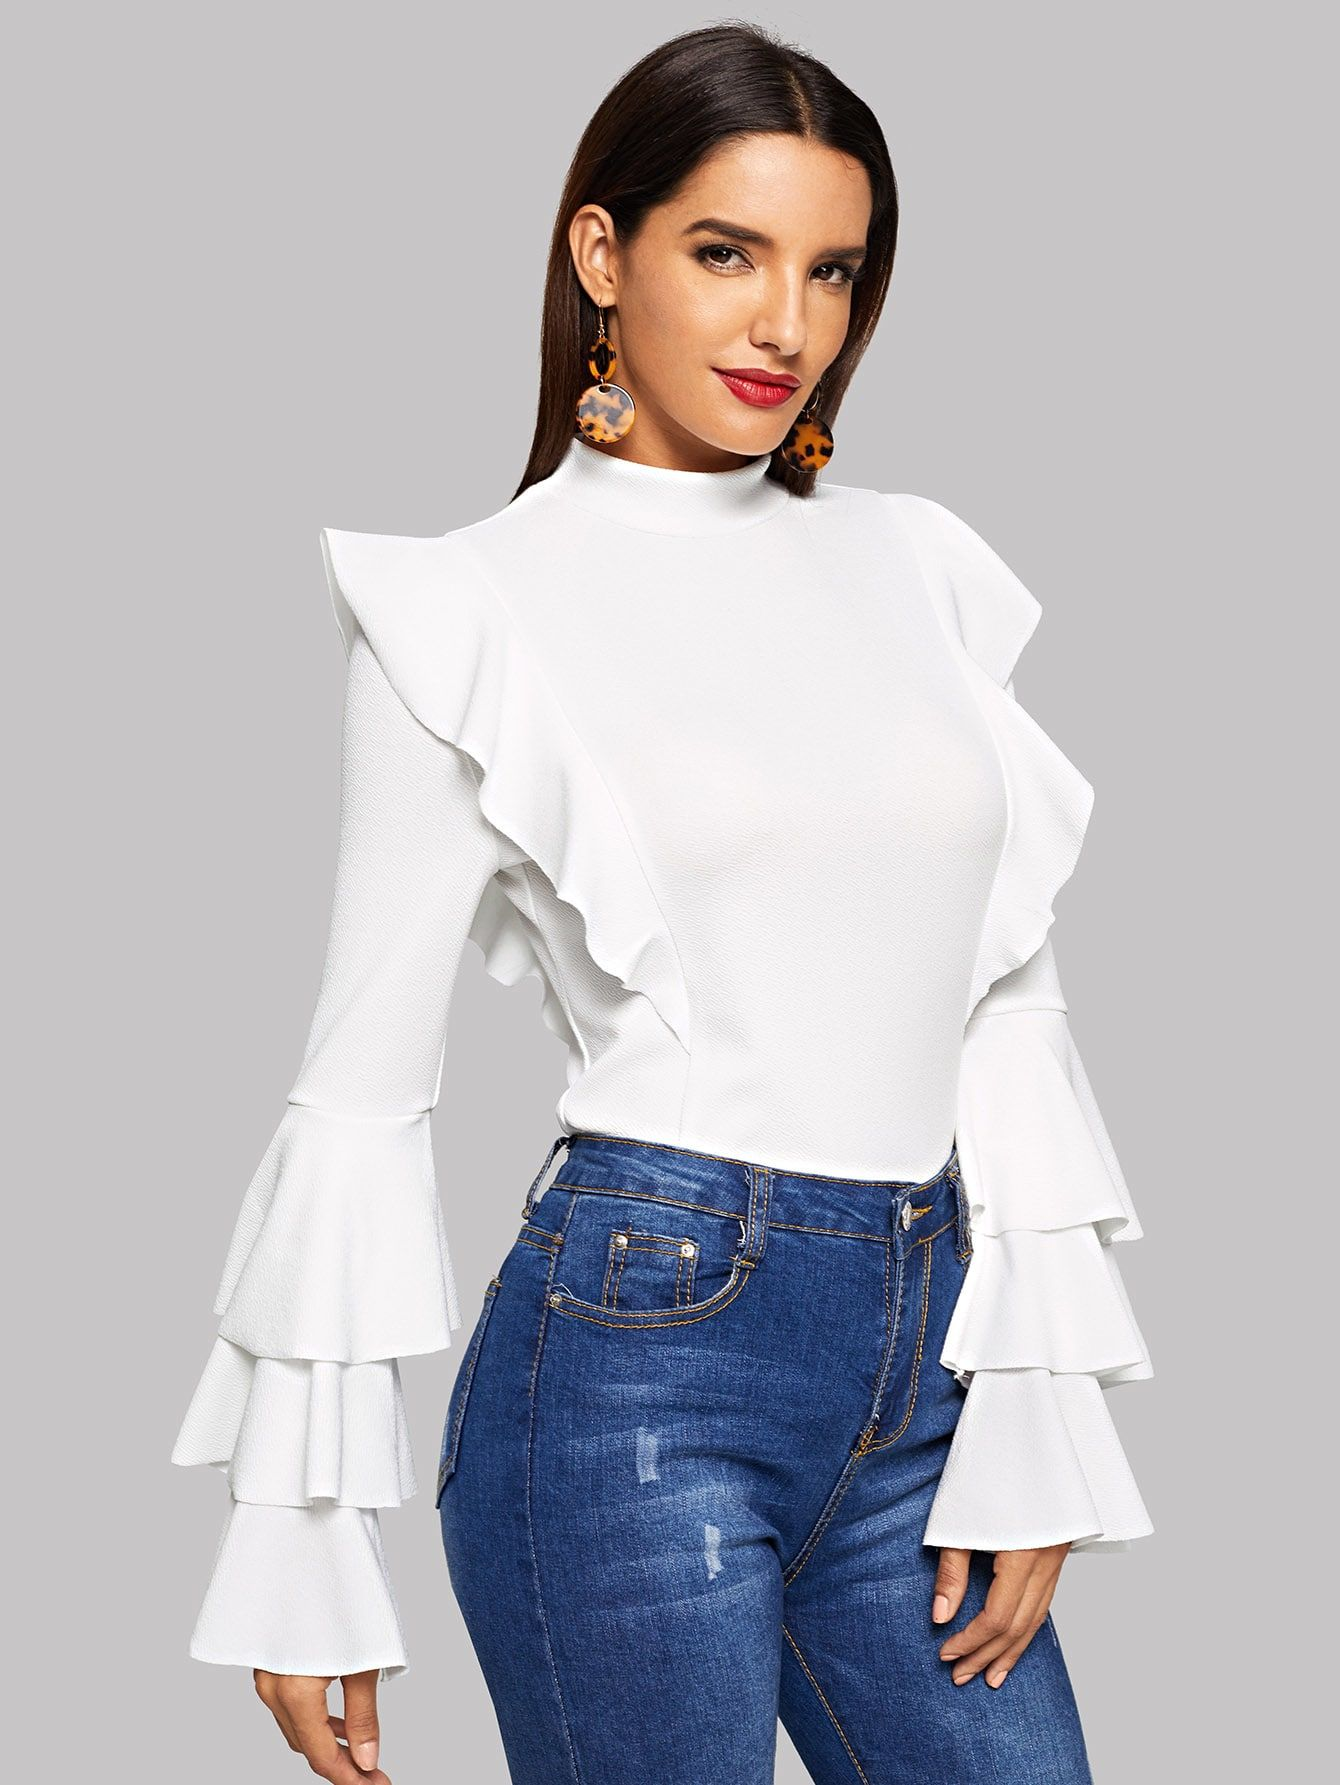 5377153504 Elegant Ruffle and Tiered Layer Plain Top Slim Fit Stand Collar Long Sleeve  Pullovers White Regular Length Layered Sleeve Ruffle Trim Pullover